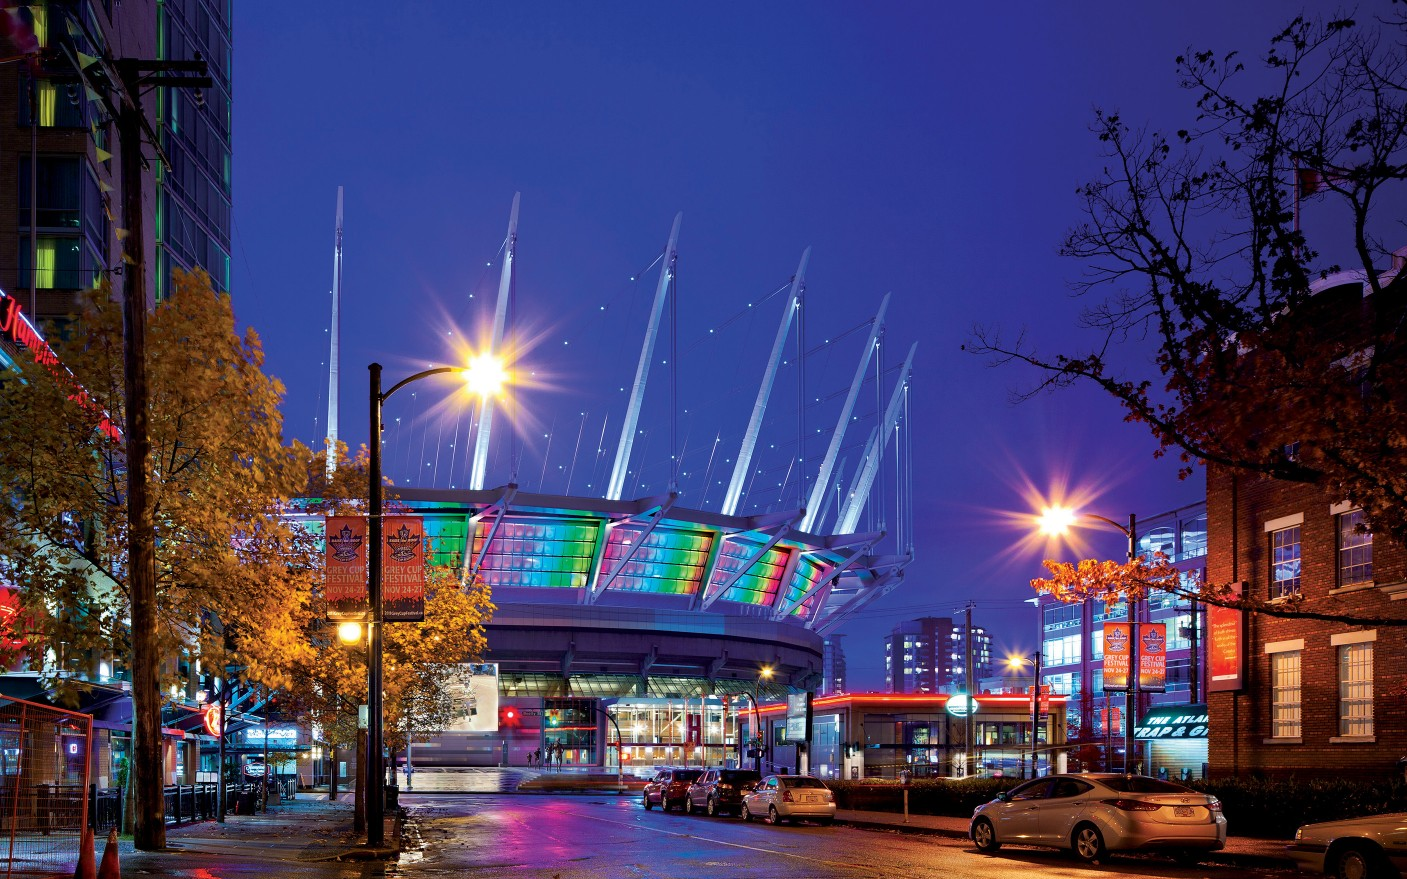 Lighting designer CM Kling+Associates has helped reinvent Vancouver's much-loved BC Place Stadium giving it a colorful and dynamic new presence on the city's skyline. – Photography by Ed White